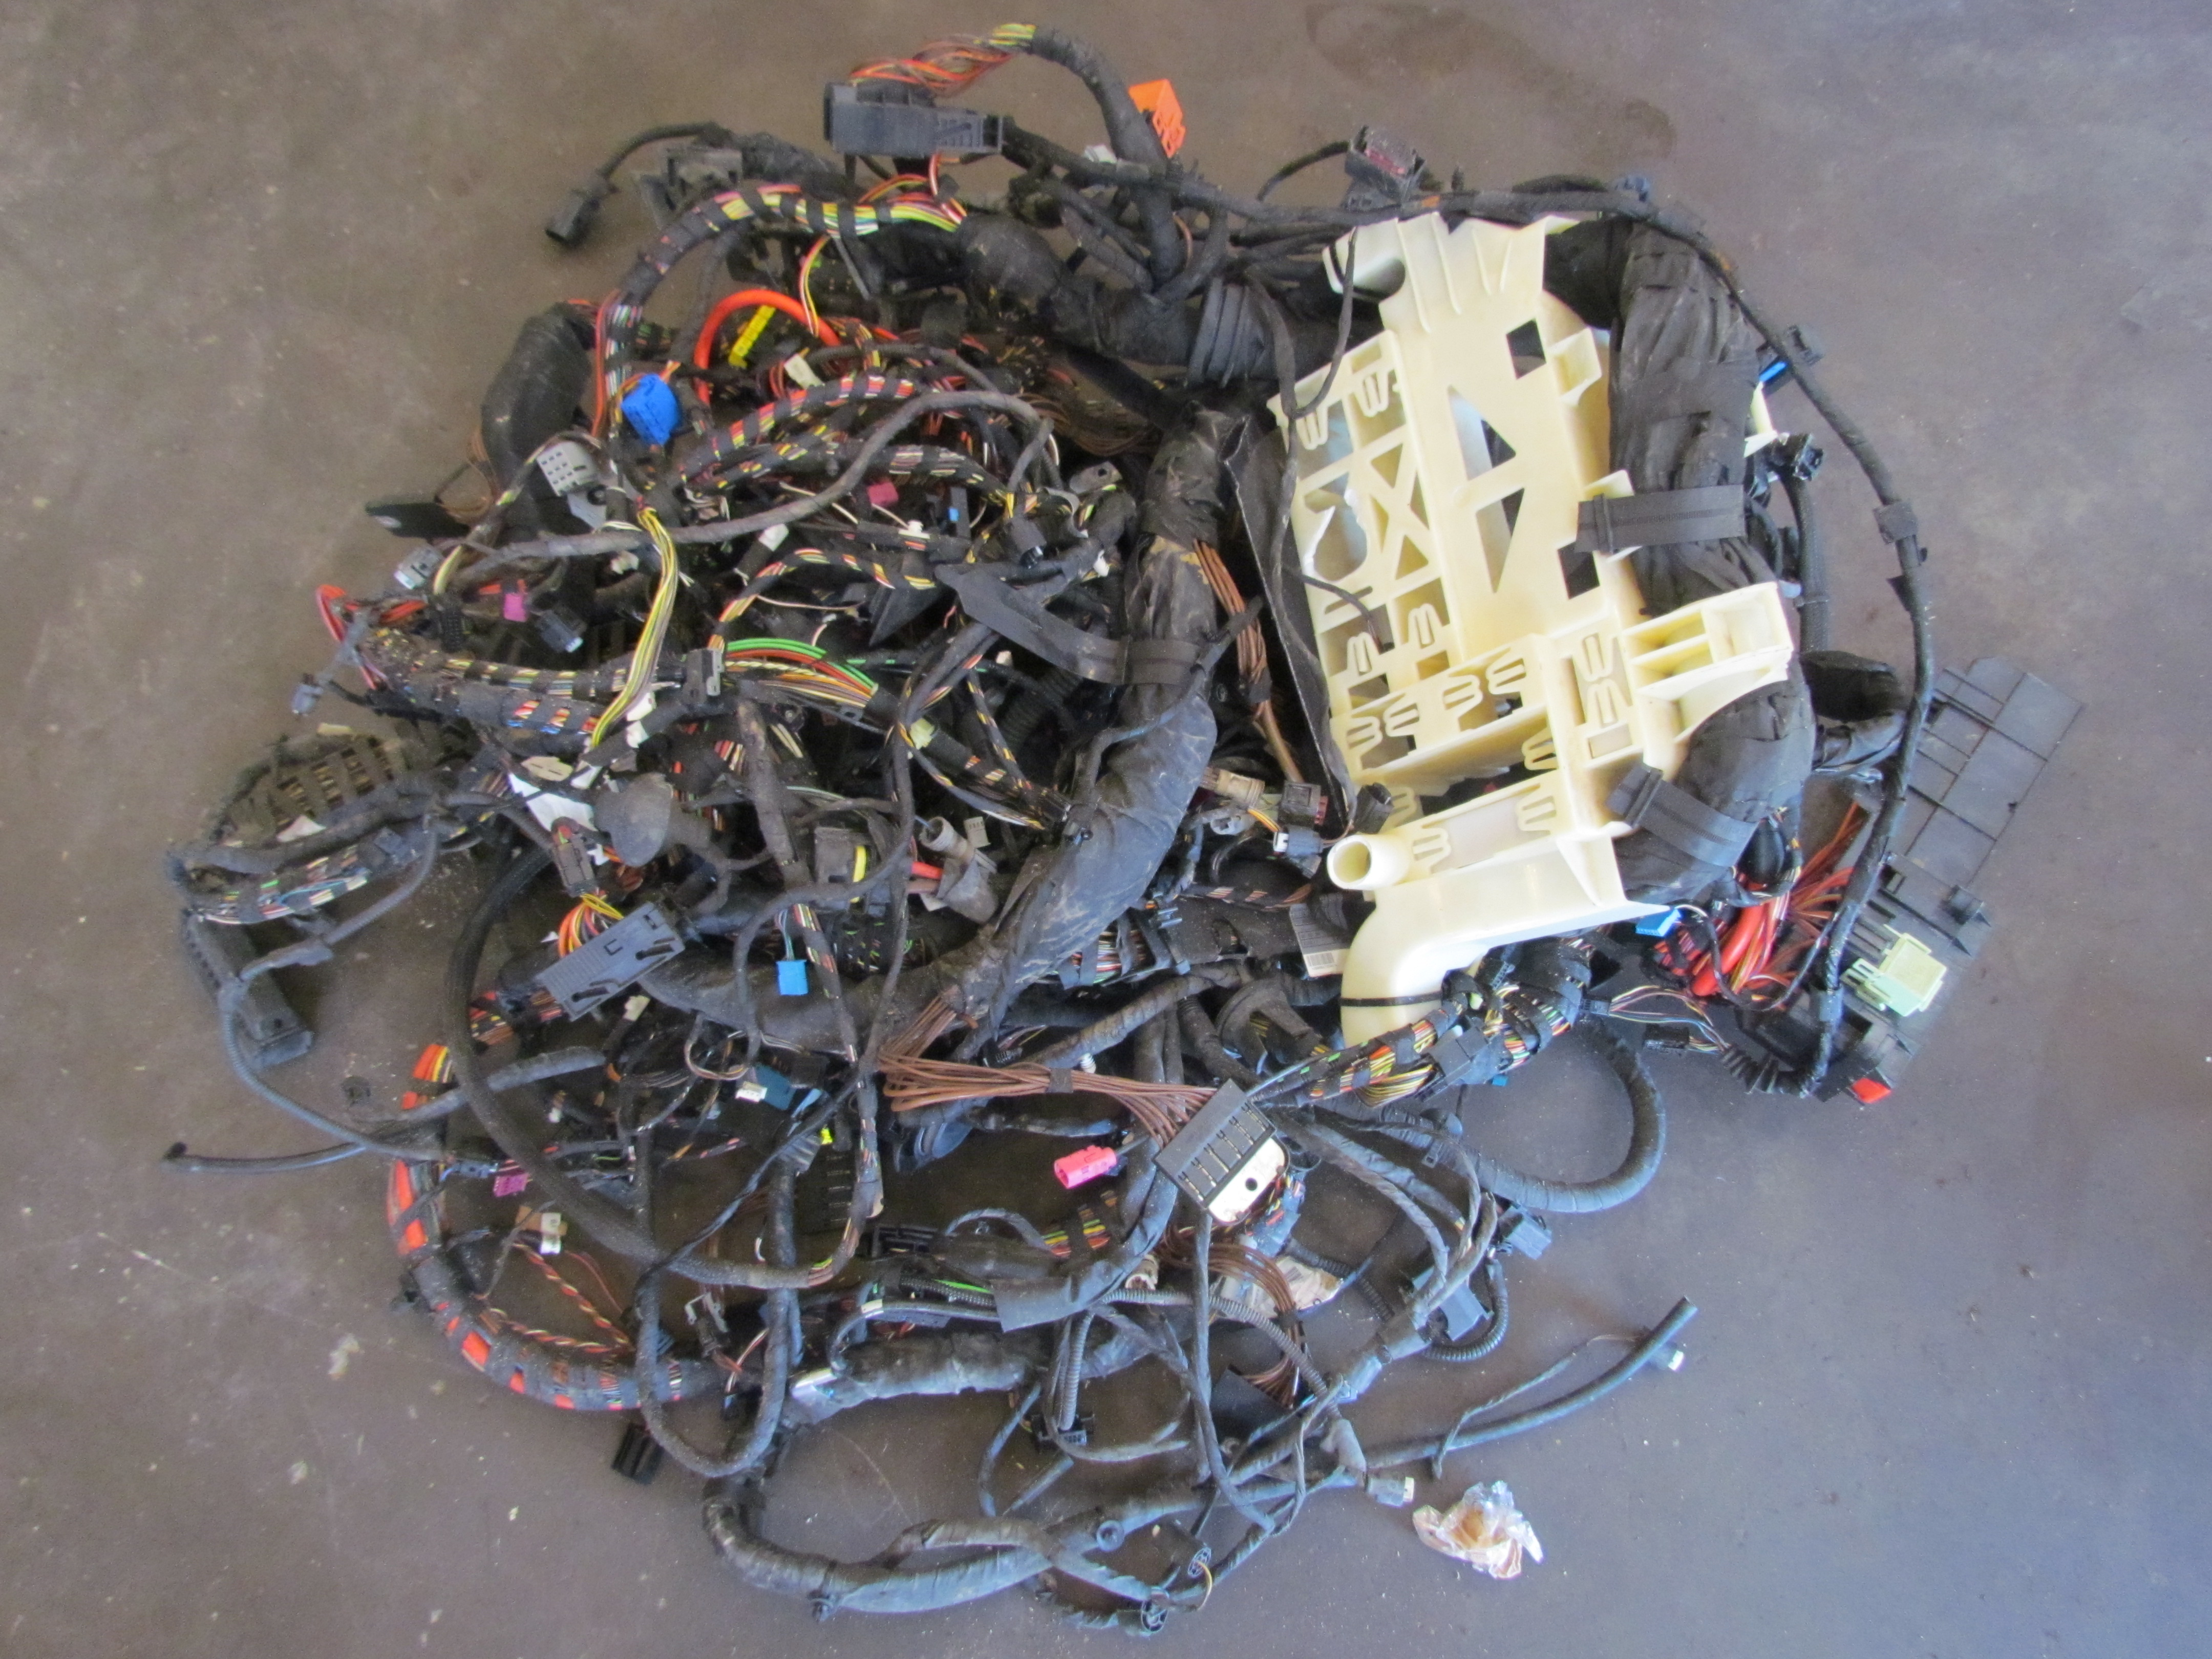 e64 bmw engine wiring harness wiring diagram Mercury Wiring Harness 2007 bmw m6 main body wire wiring harness e63 convertible ebayimage is loading 2007 bmw m6